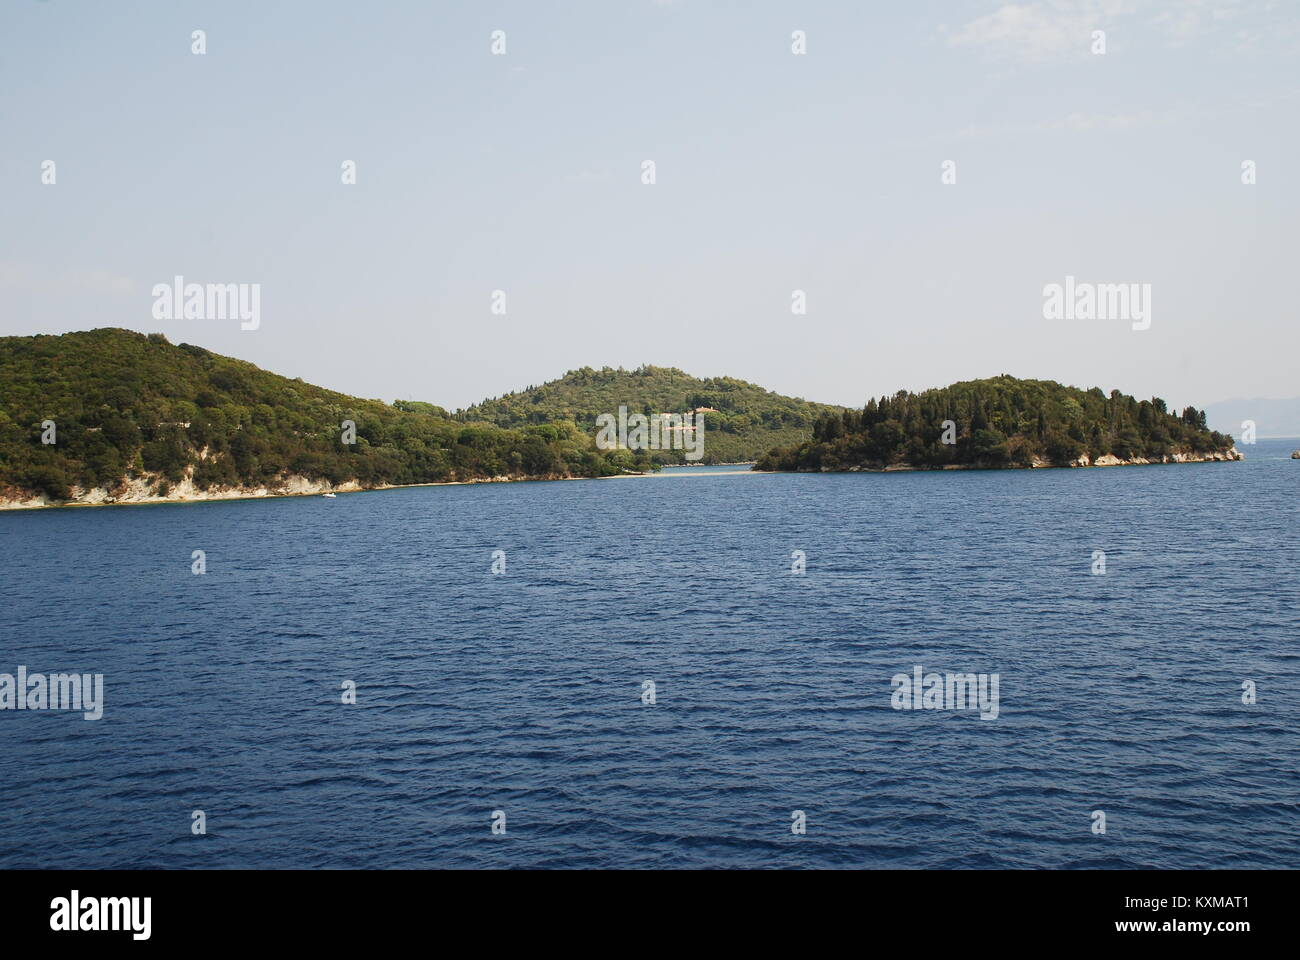 The small island of Skorpios off the coast of Lefkada, Greece. The island is home to the Onassis shipping family. - Stock Image